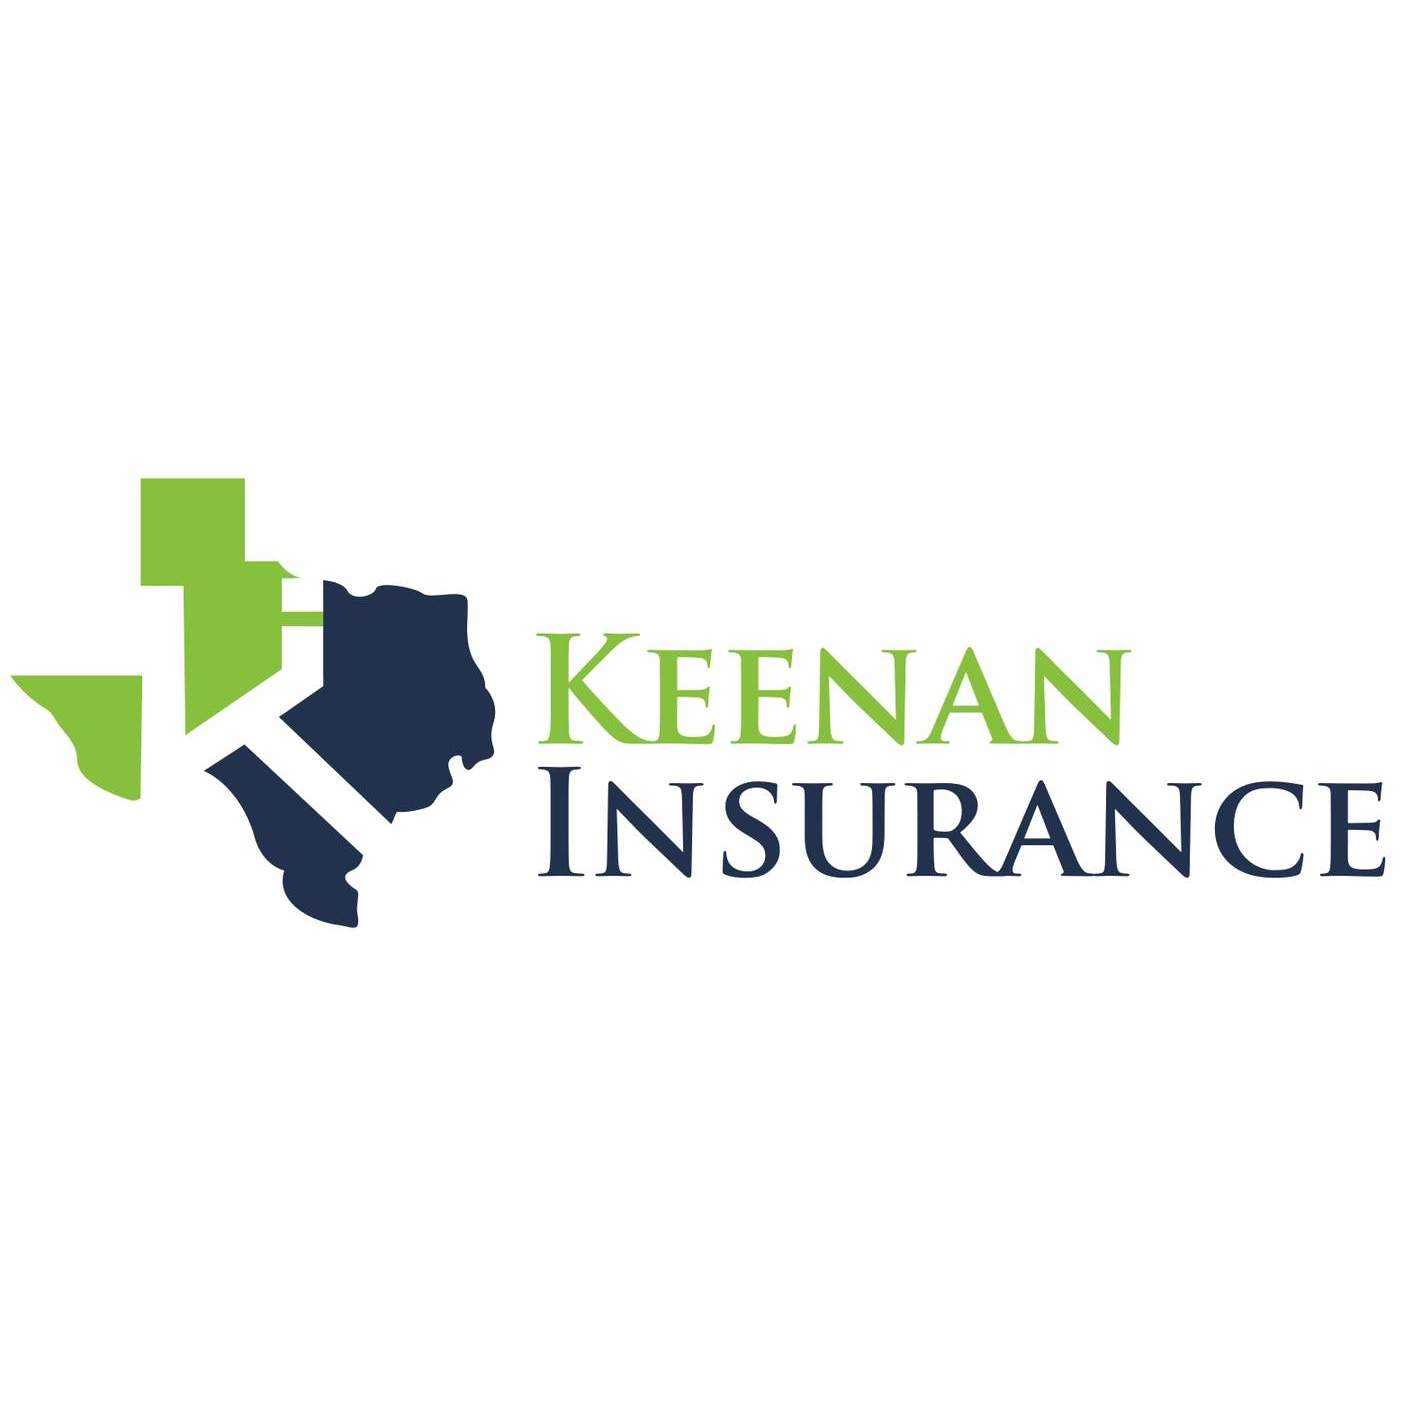 Keenan Insurance & Financial Services - Houston, TX - Insurance Agents